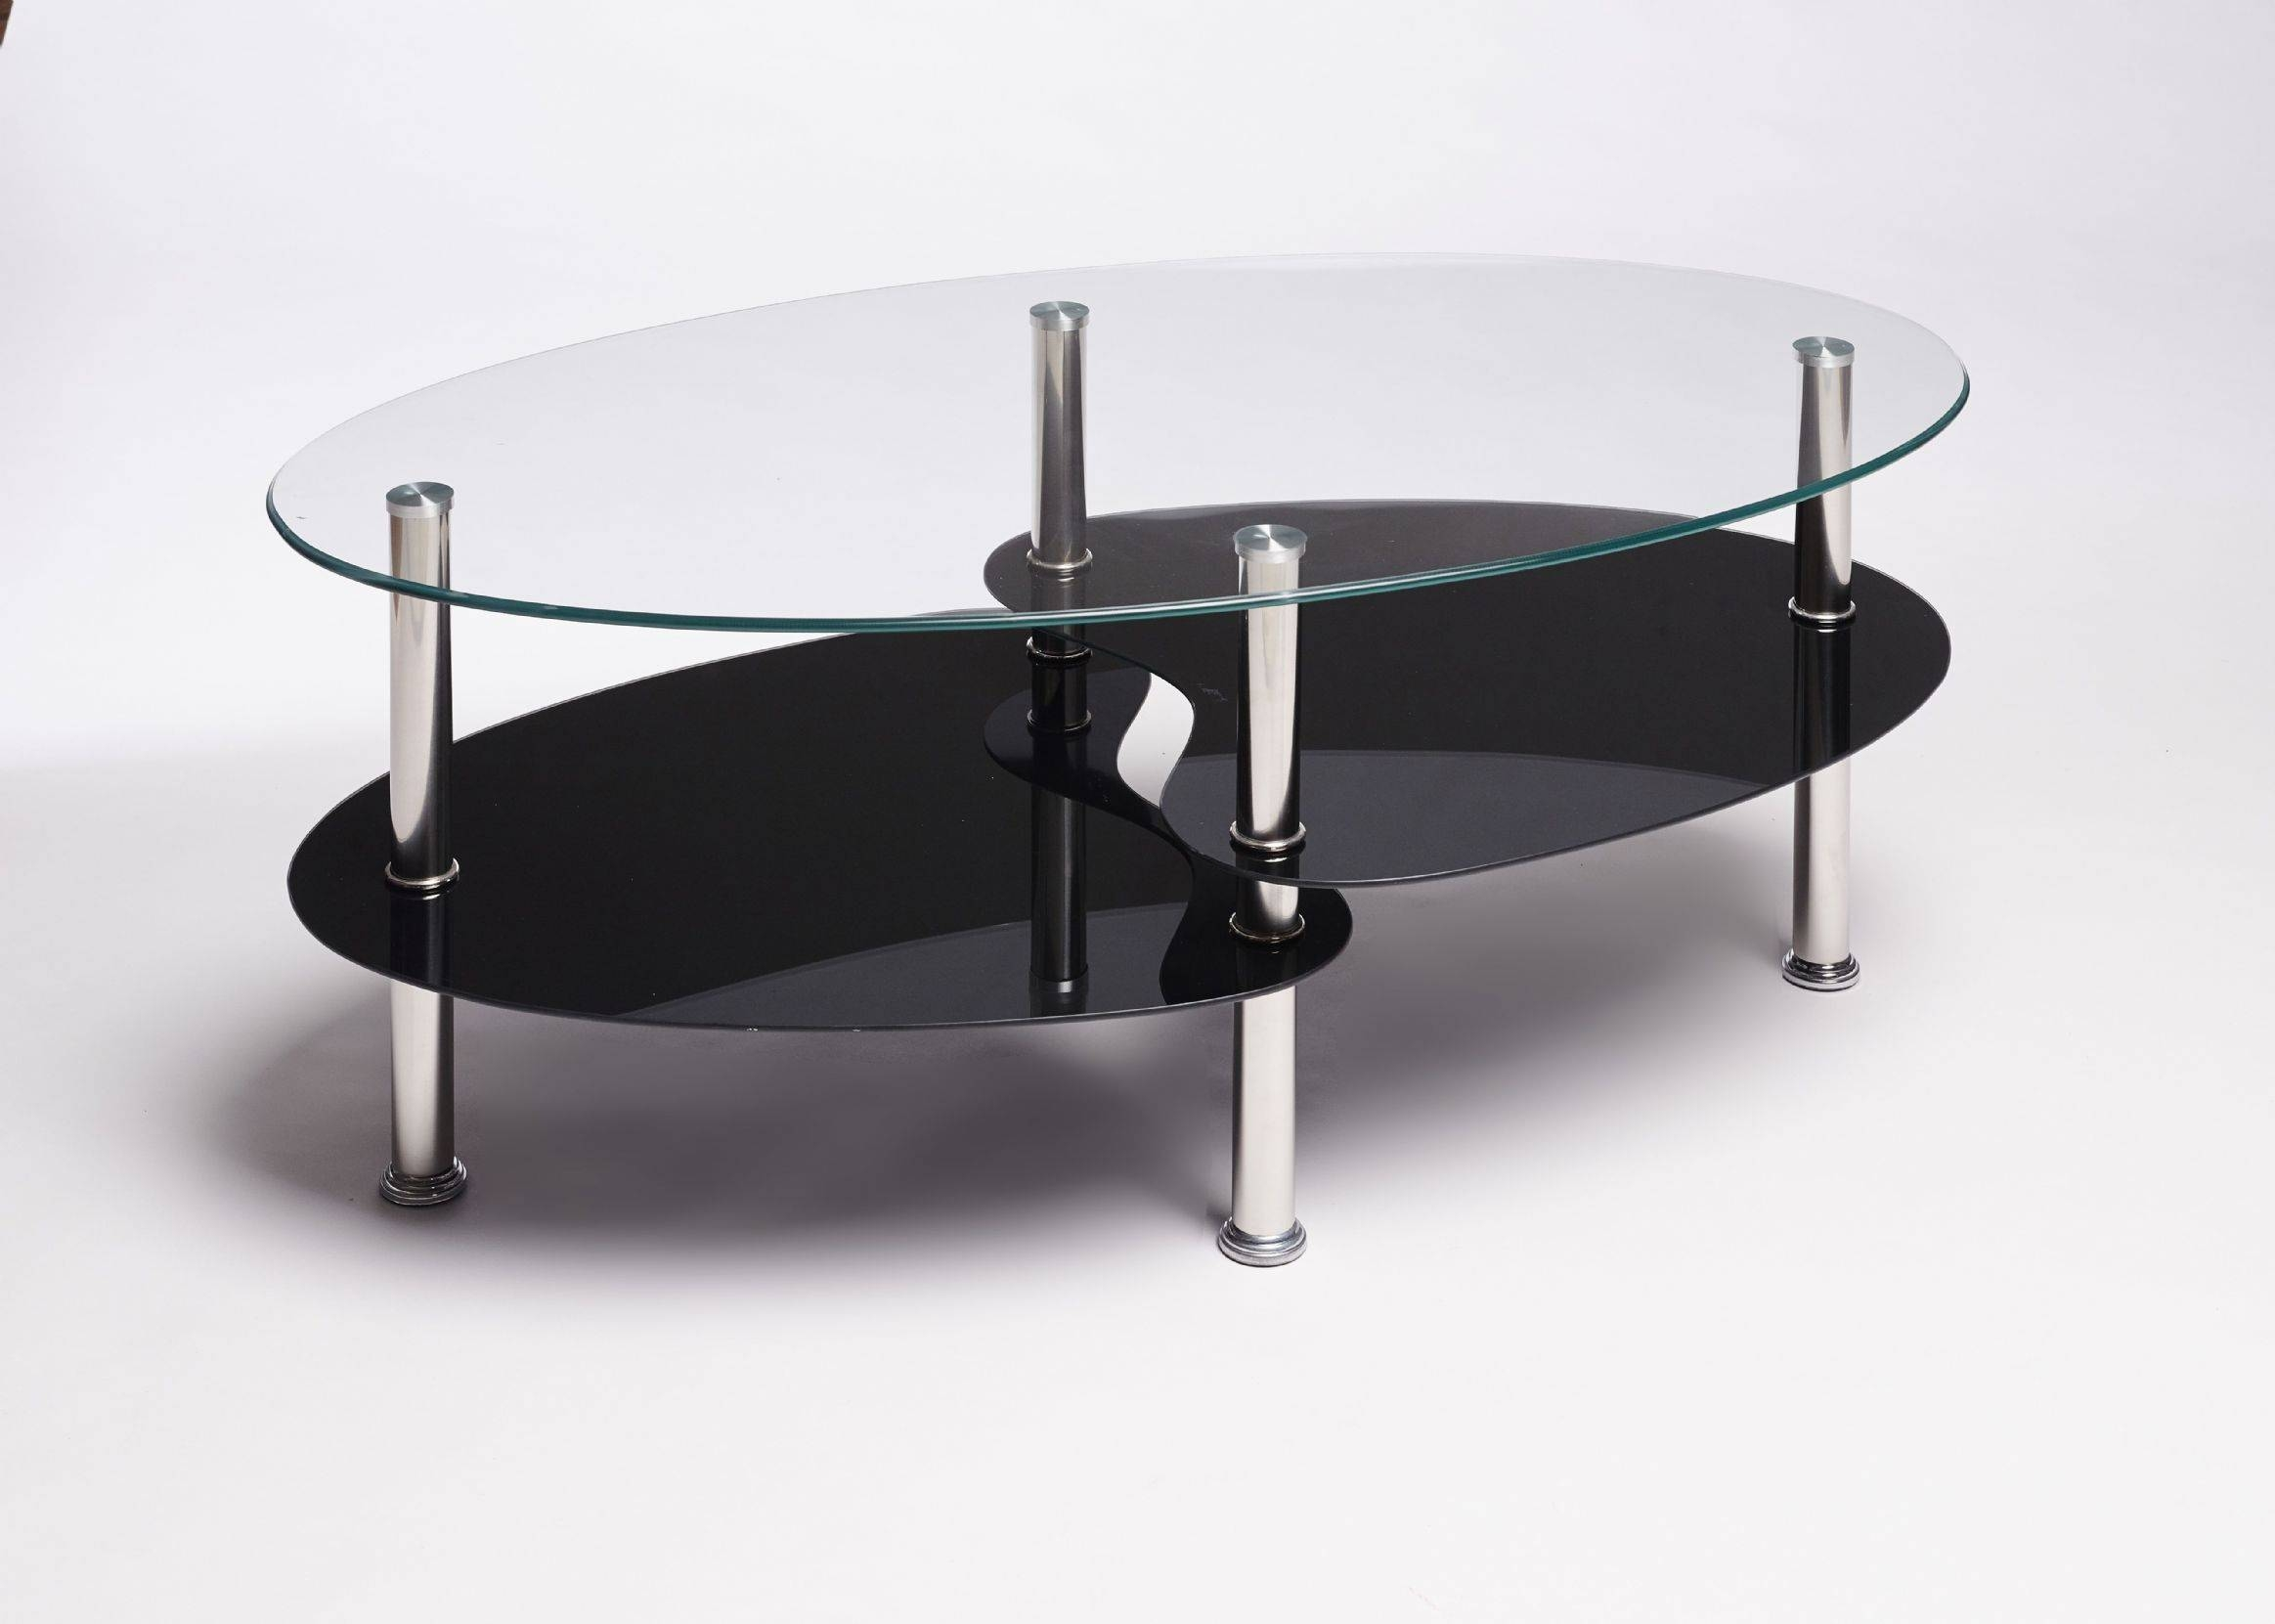 Furniture: Oval Glass Top Coffee Table | Oval Coffee Table Glass pertaining to Oval Black Glass Coffee Tables (Image 16 of 30)